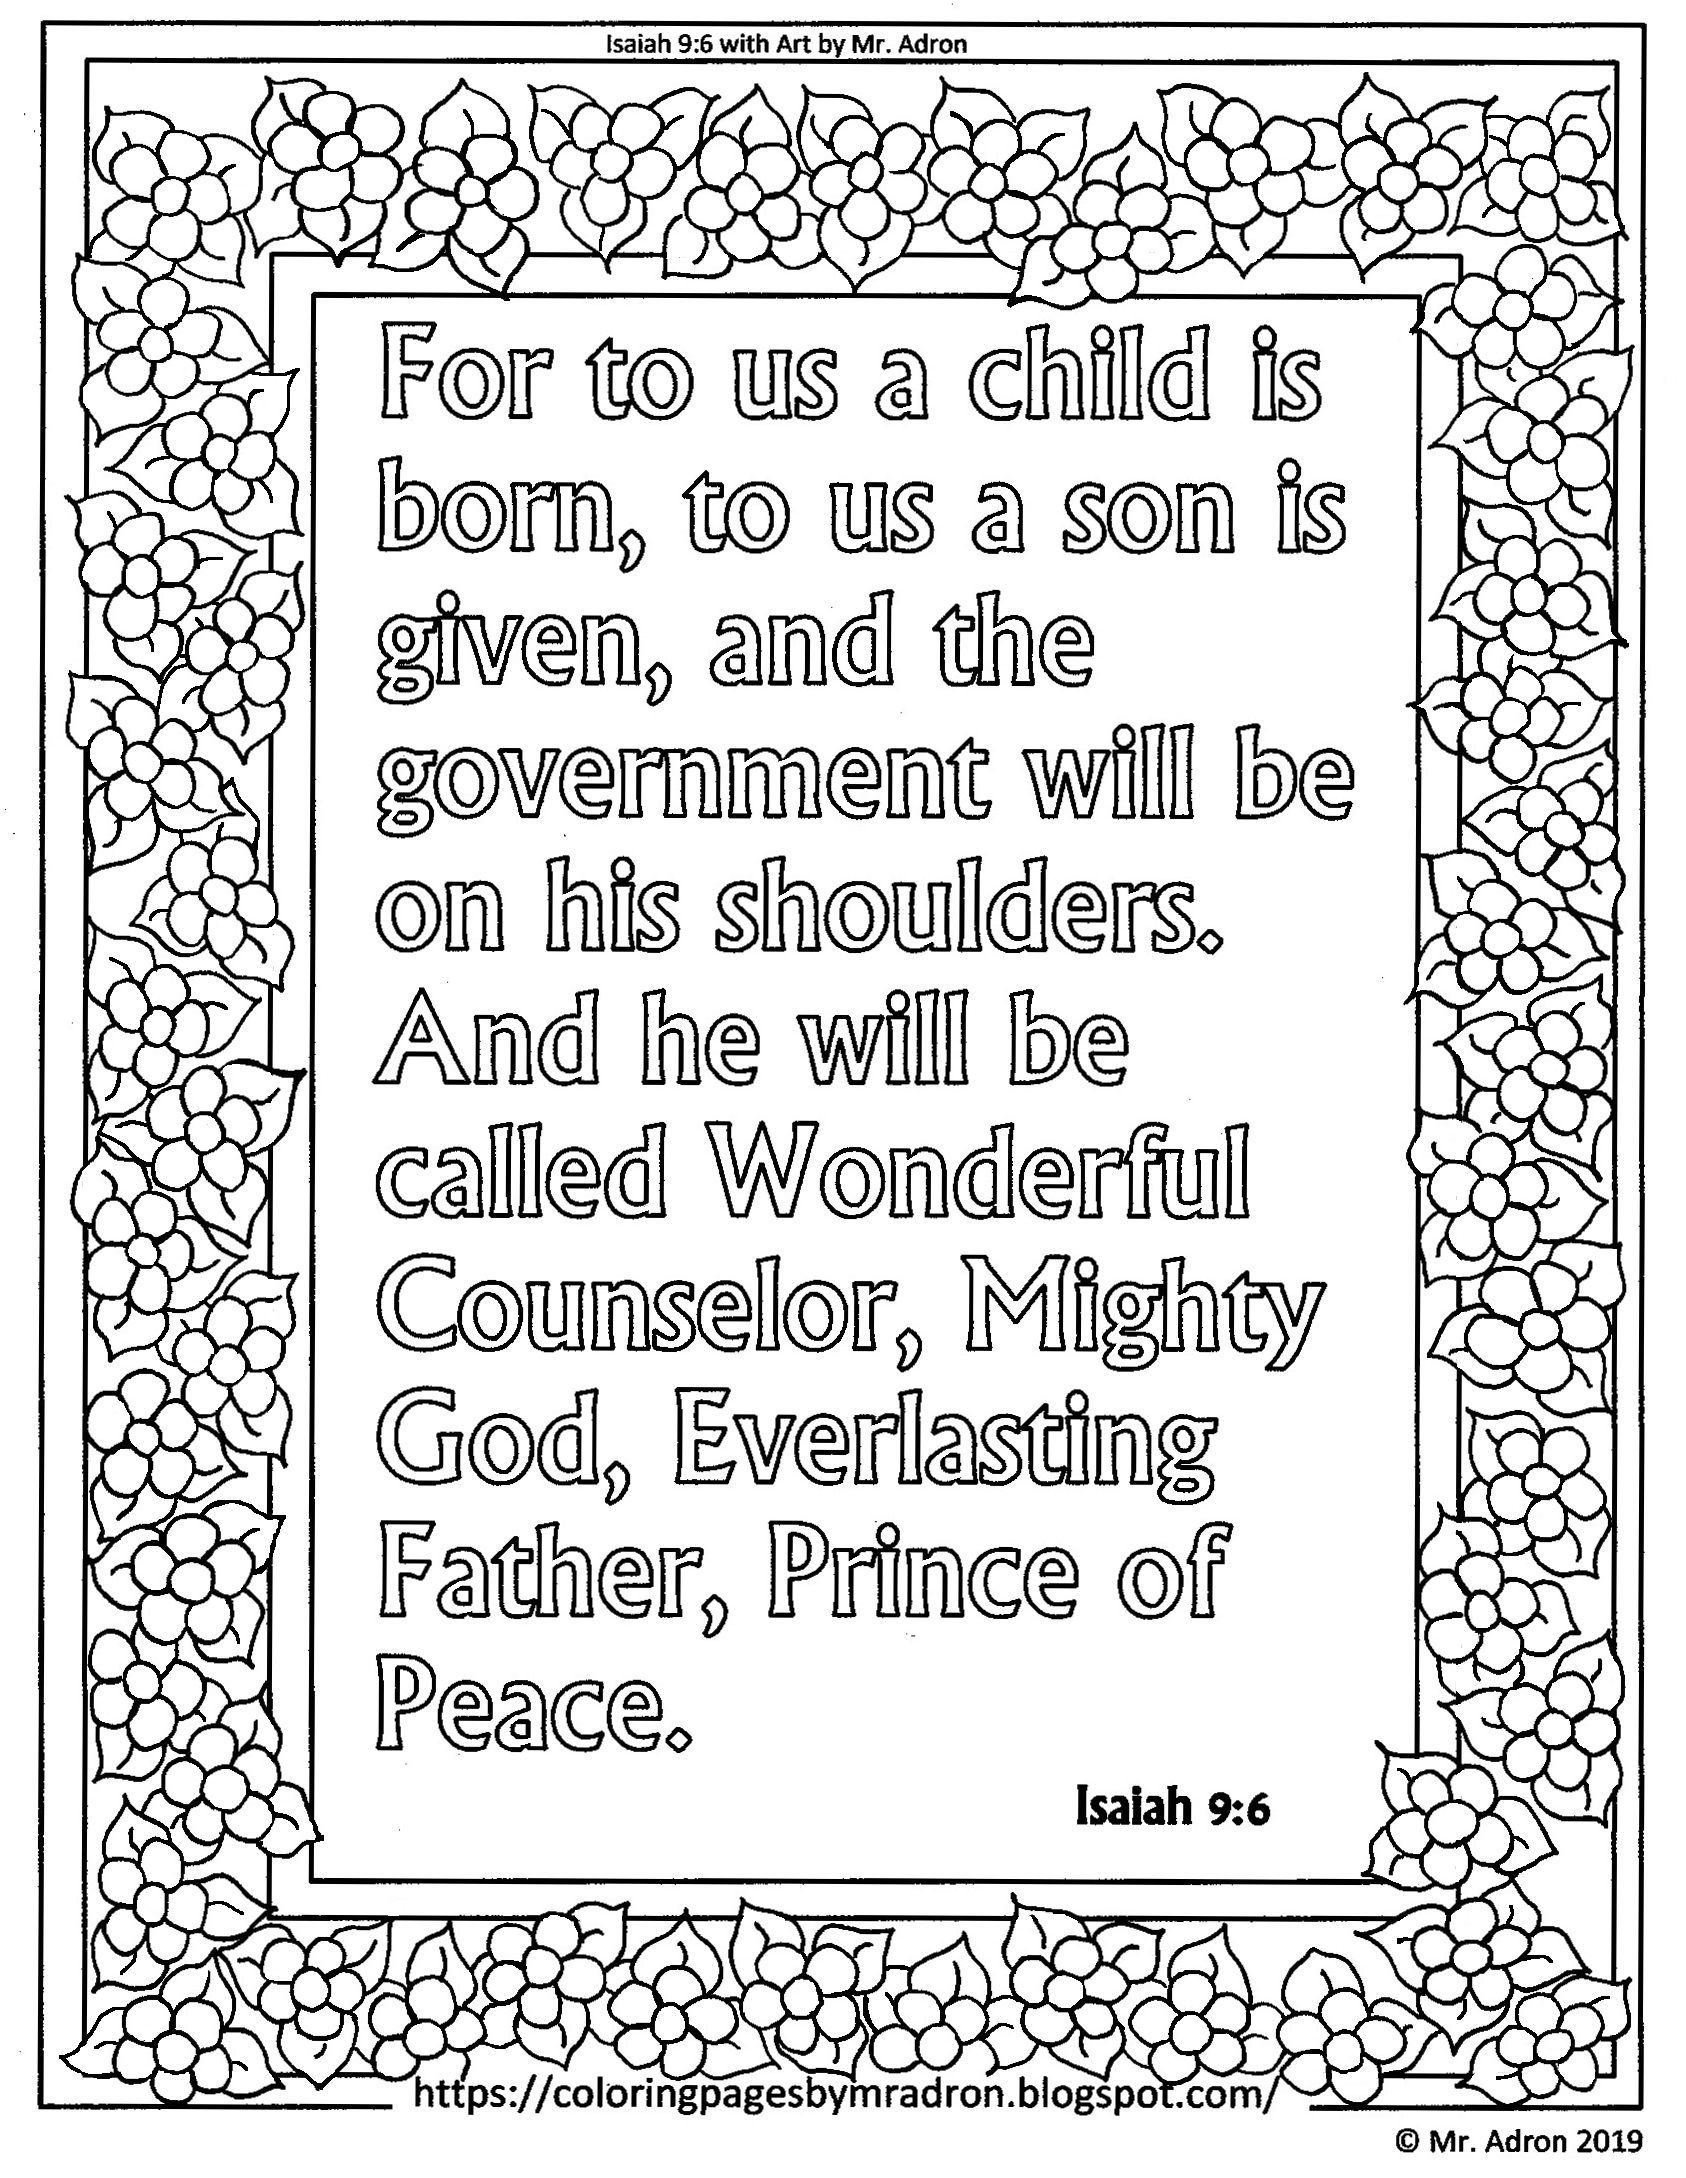 Free Print and Color Isaiah 9:6 Page, For to us a child is ...